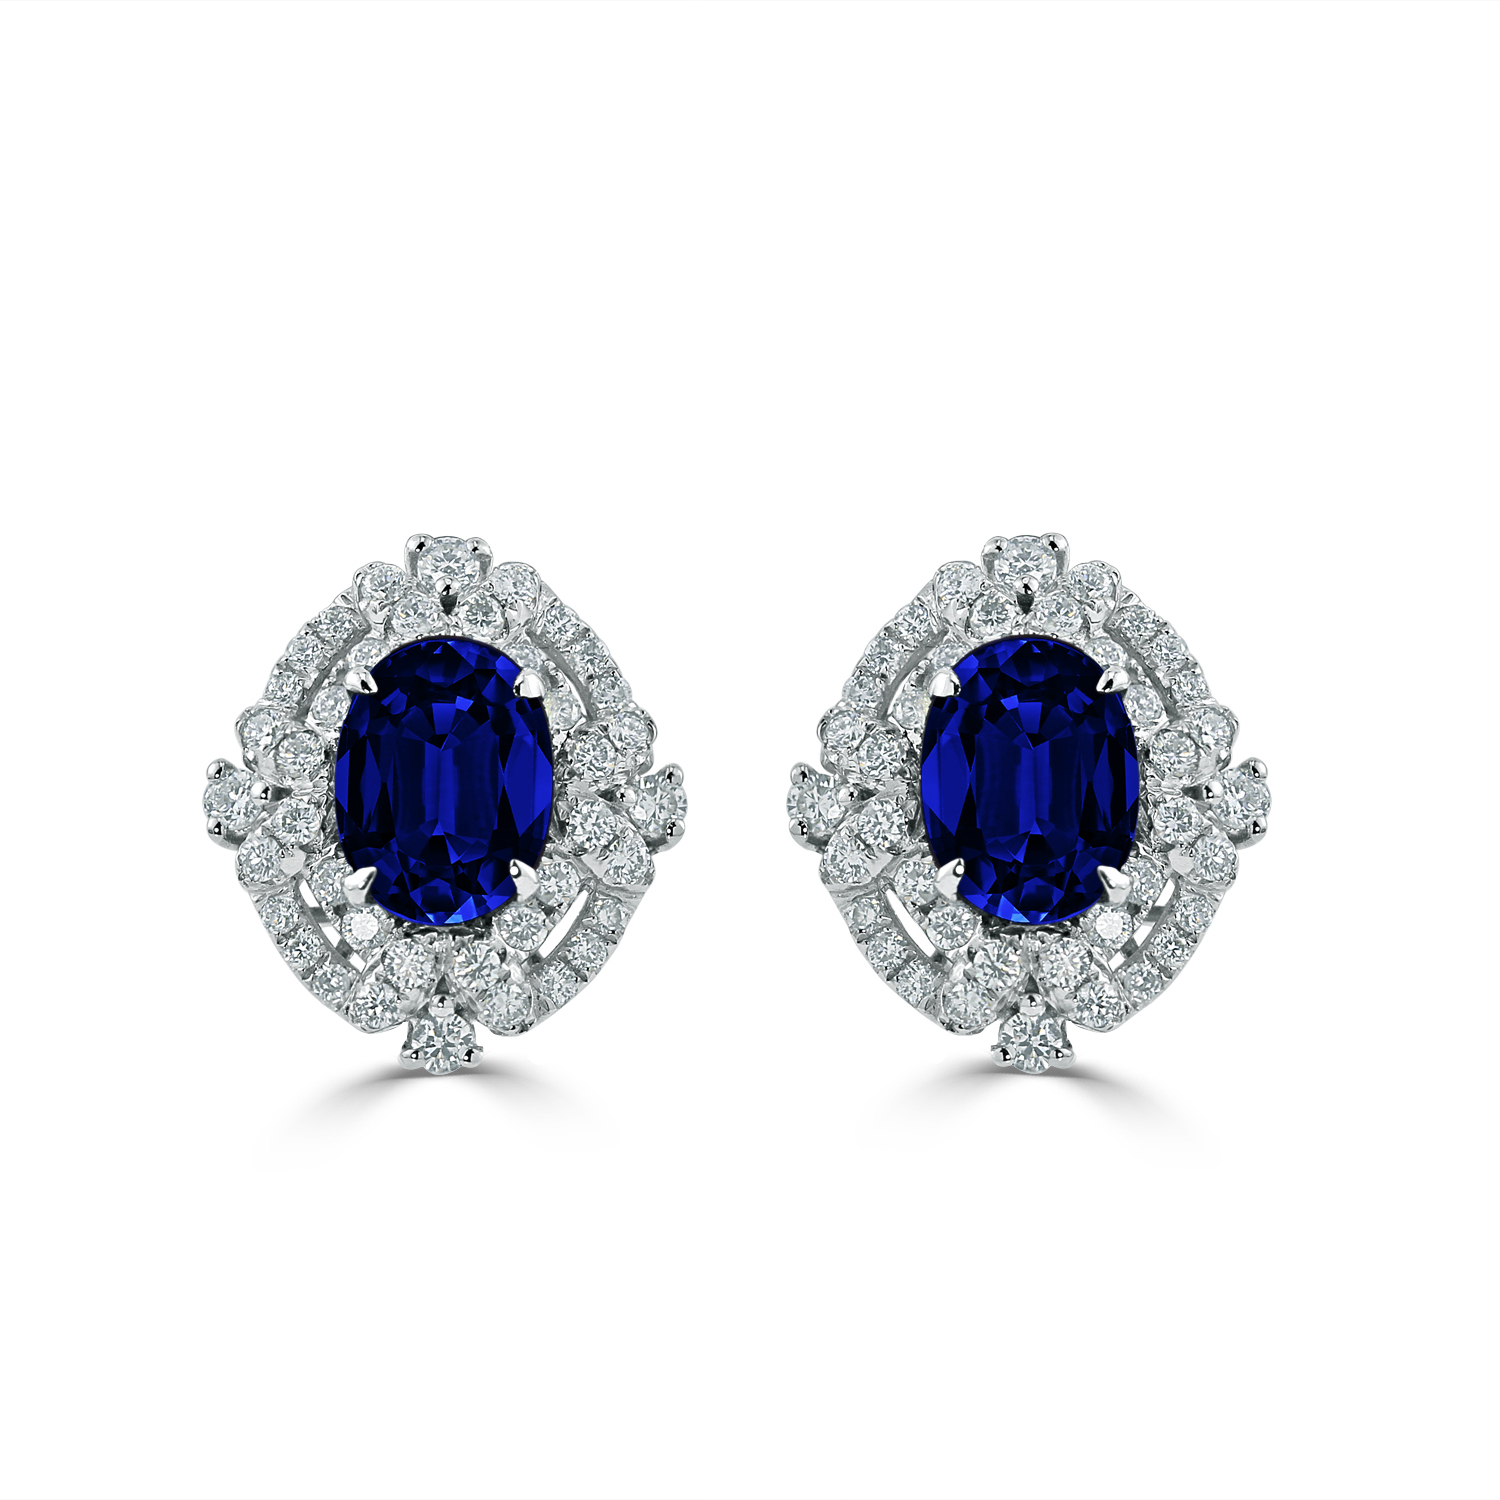 18K White Gold Halo Diamond Earrings with 3 1/5 cttw Oval Blue Sapphire and 5/8 cttw Diamonds IGI Certified